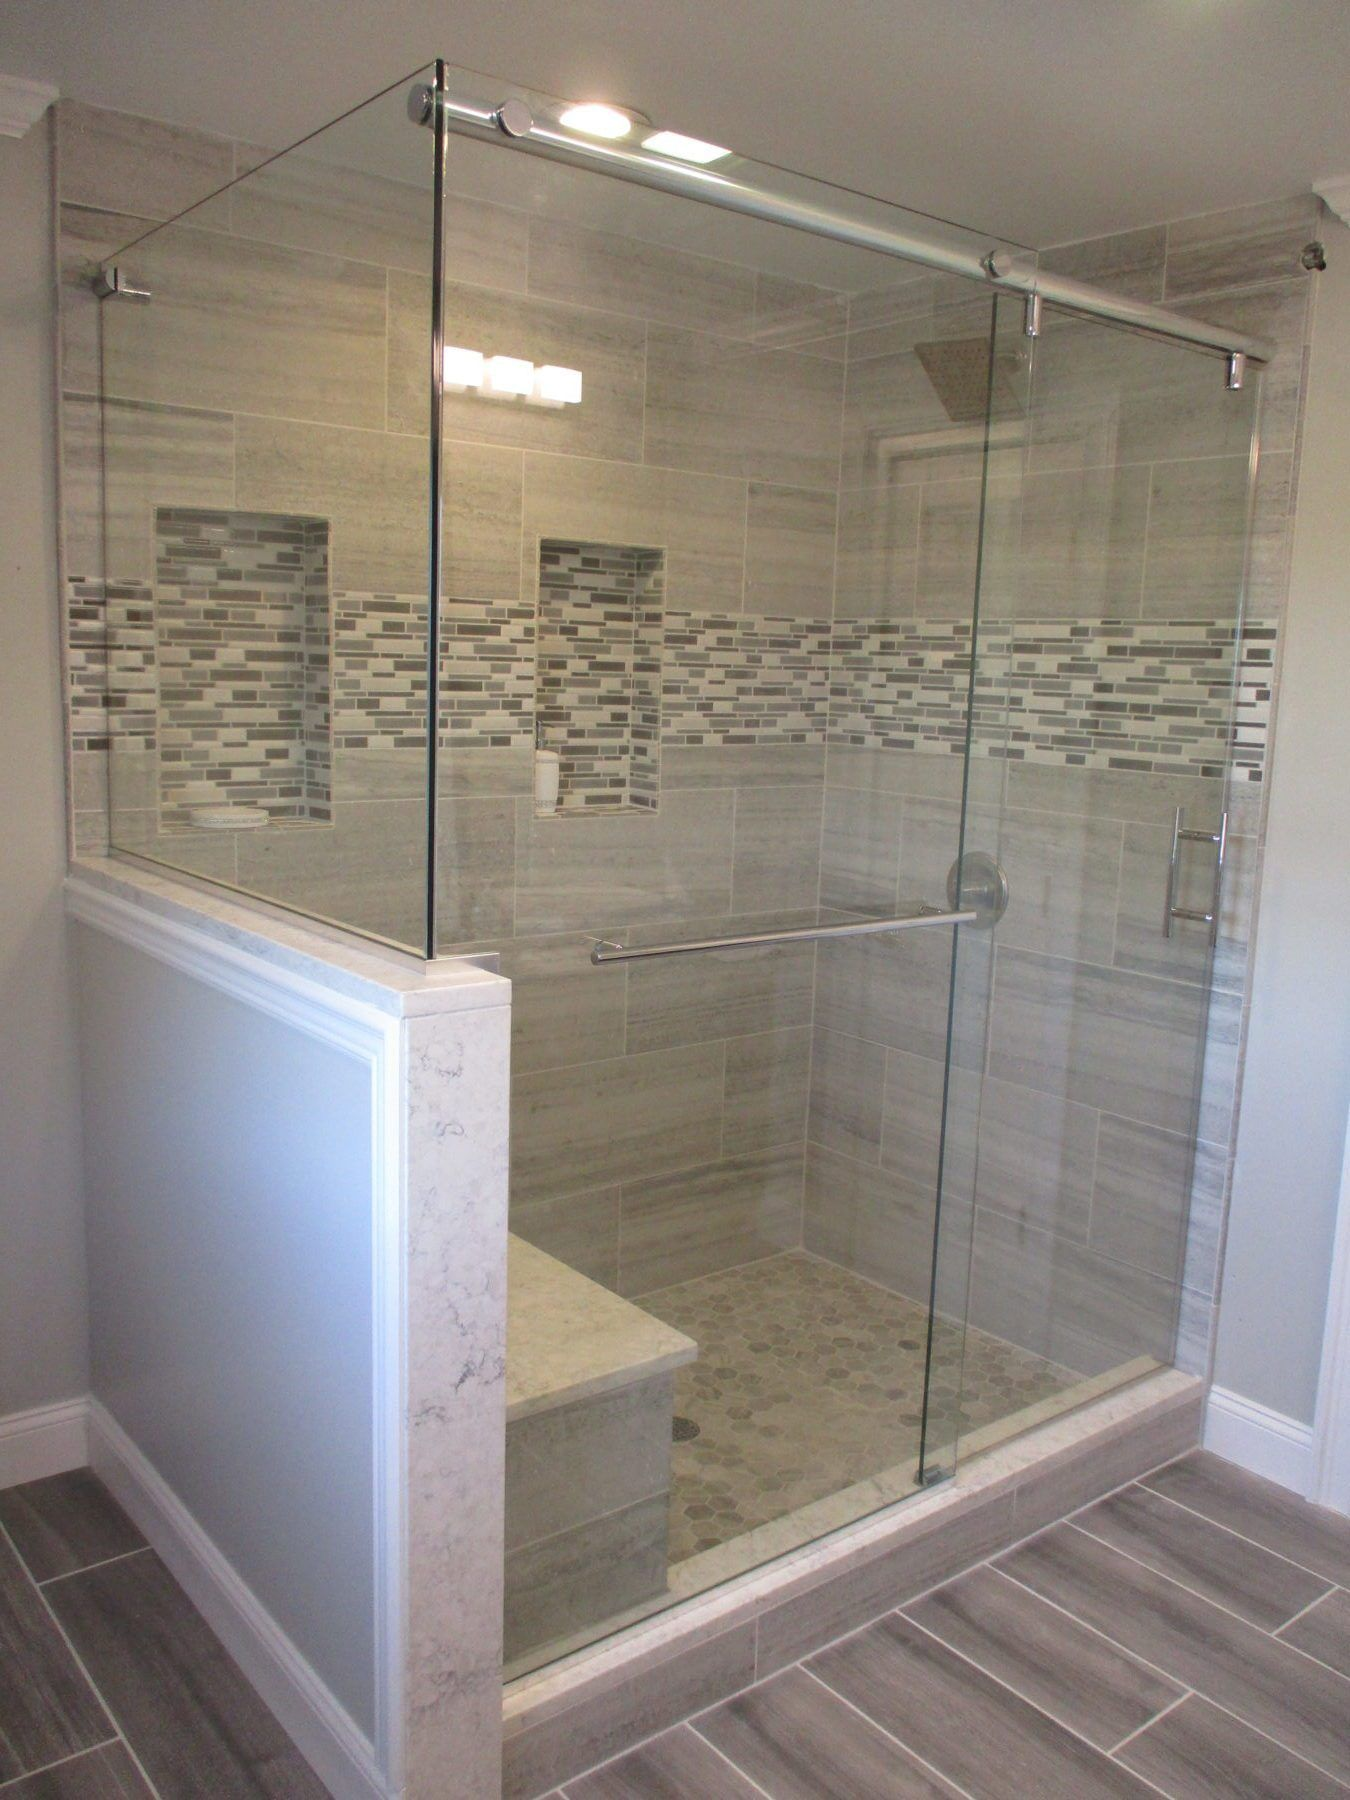 Barn Style Slider With Half Wall This Is Our Deus Everglide Barn Style Slider T Glass Shower Doors Frameless Shower Sliding Glass Door Frameless Shower Doors